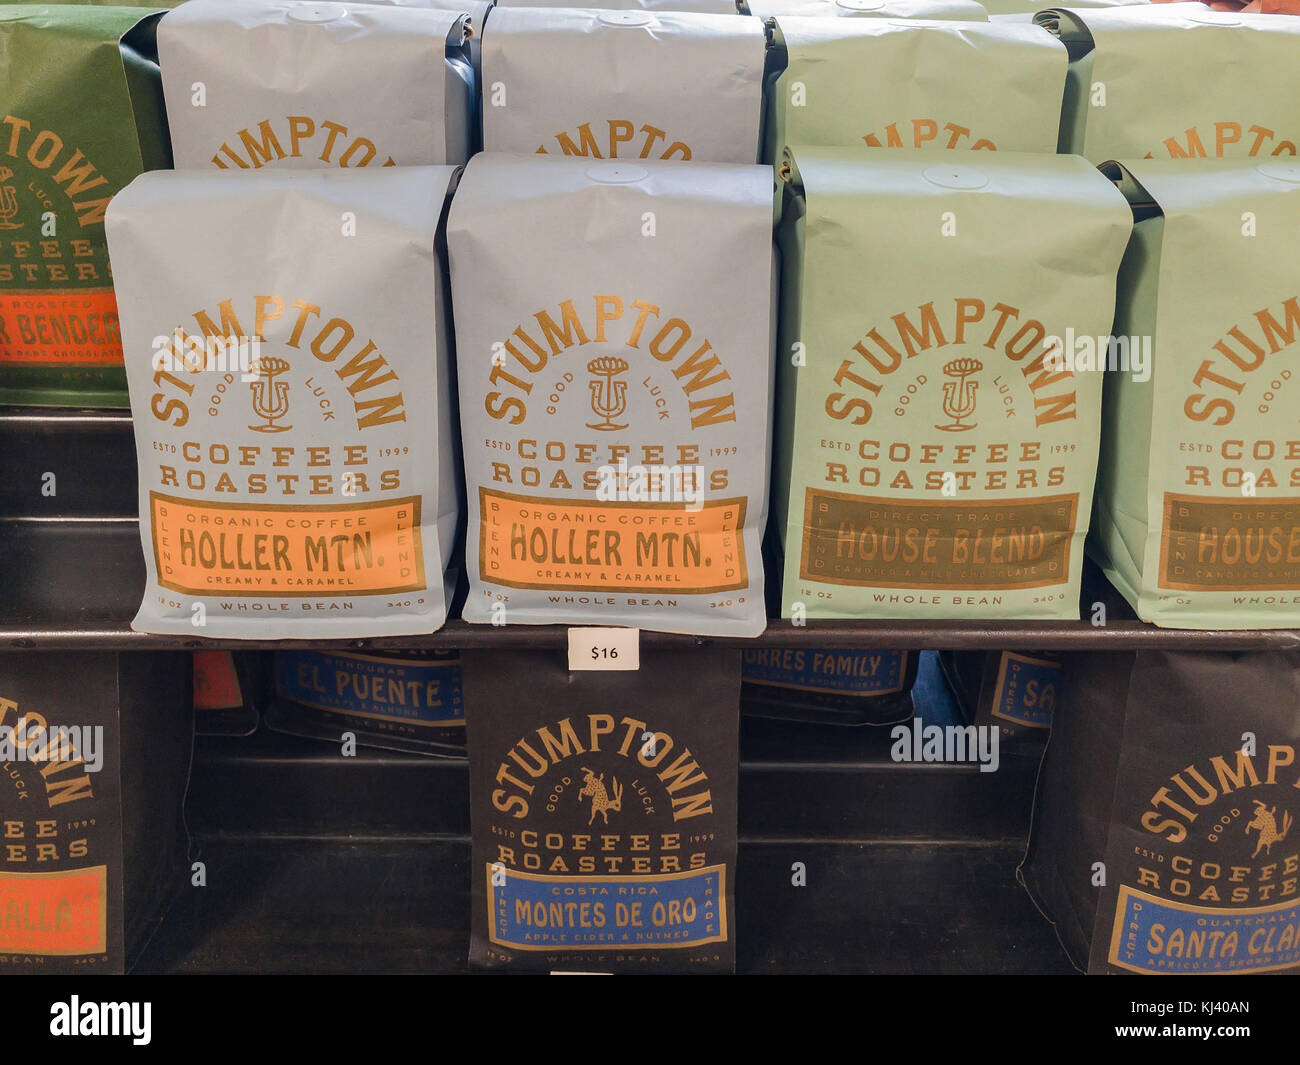 Los Angeles, NOV 5: Roasted beans selling in the famous Stumptown Coffee on NOV 5, 2017 at Los Angeles, California - Stock Image